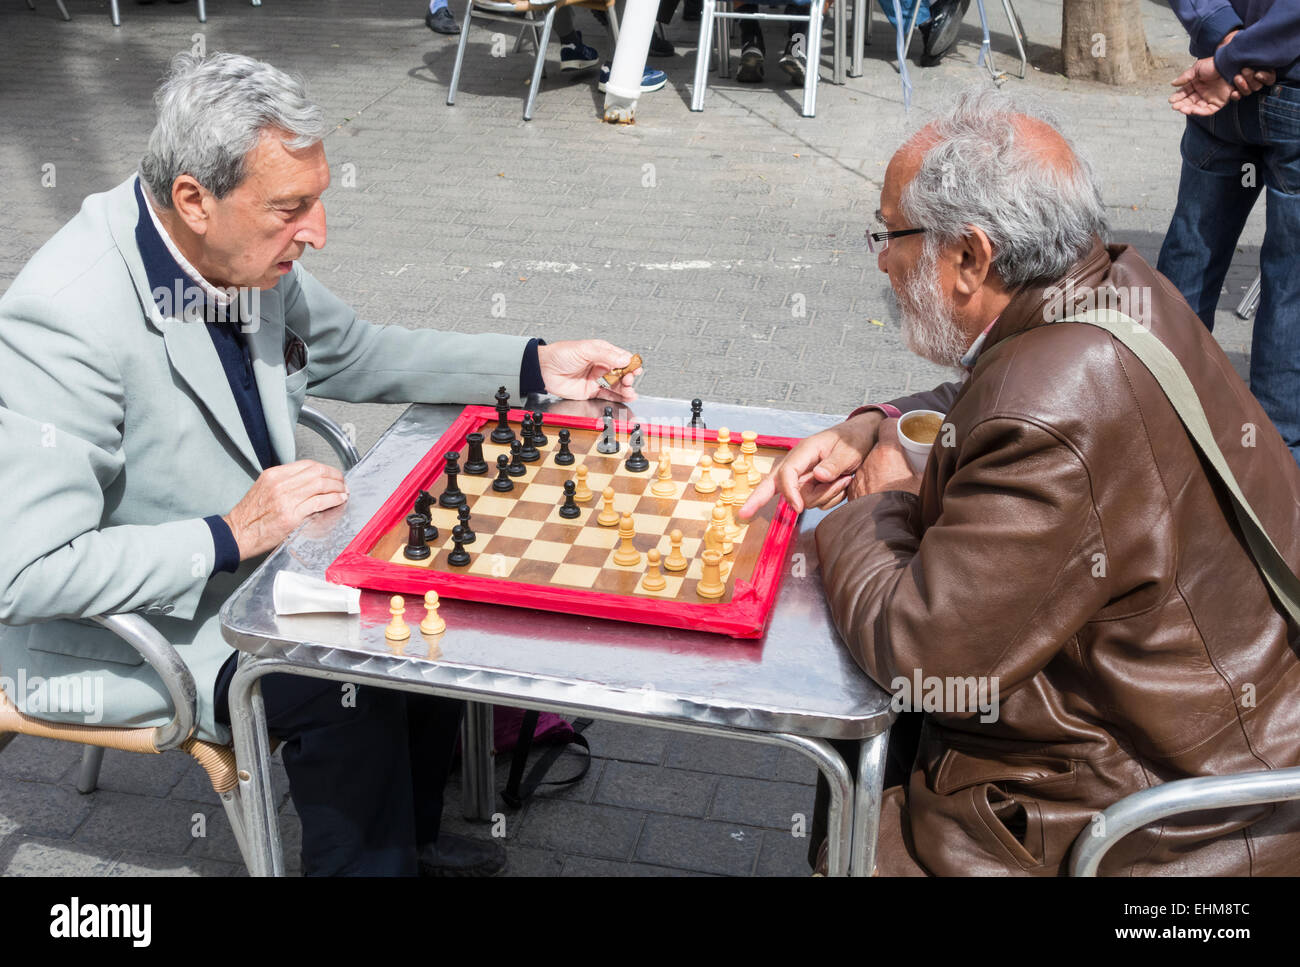 Men playing Chess in Parque Santa Catalina, Las Palmas, Gran Canaria, Canary Islands, Spain - Stock Image